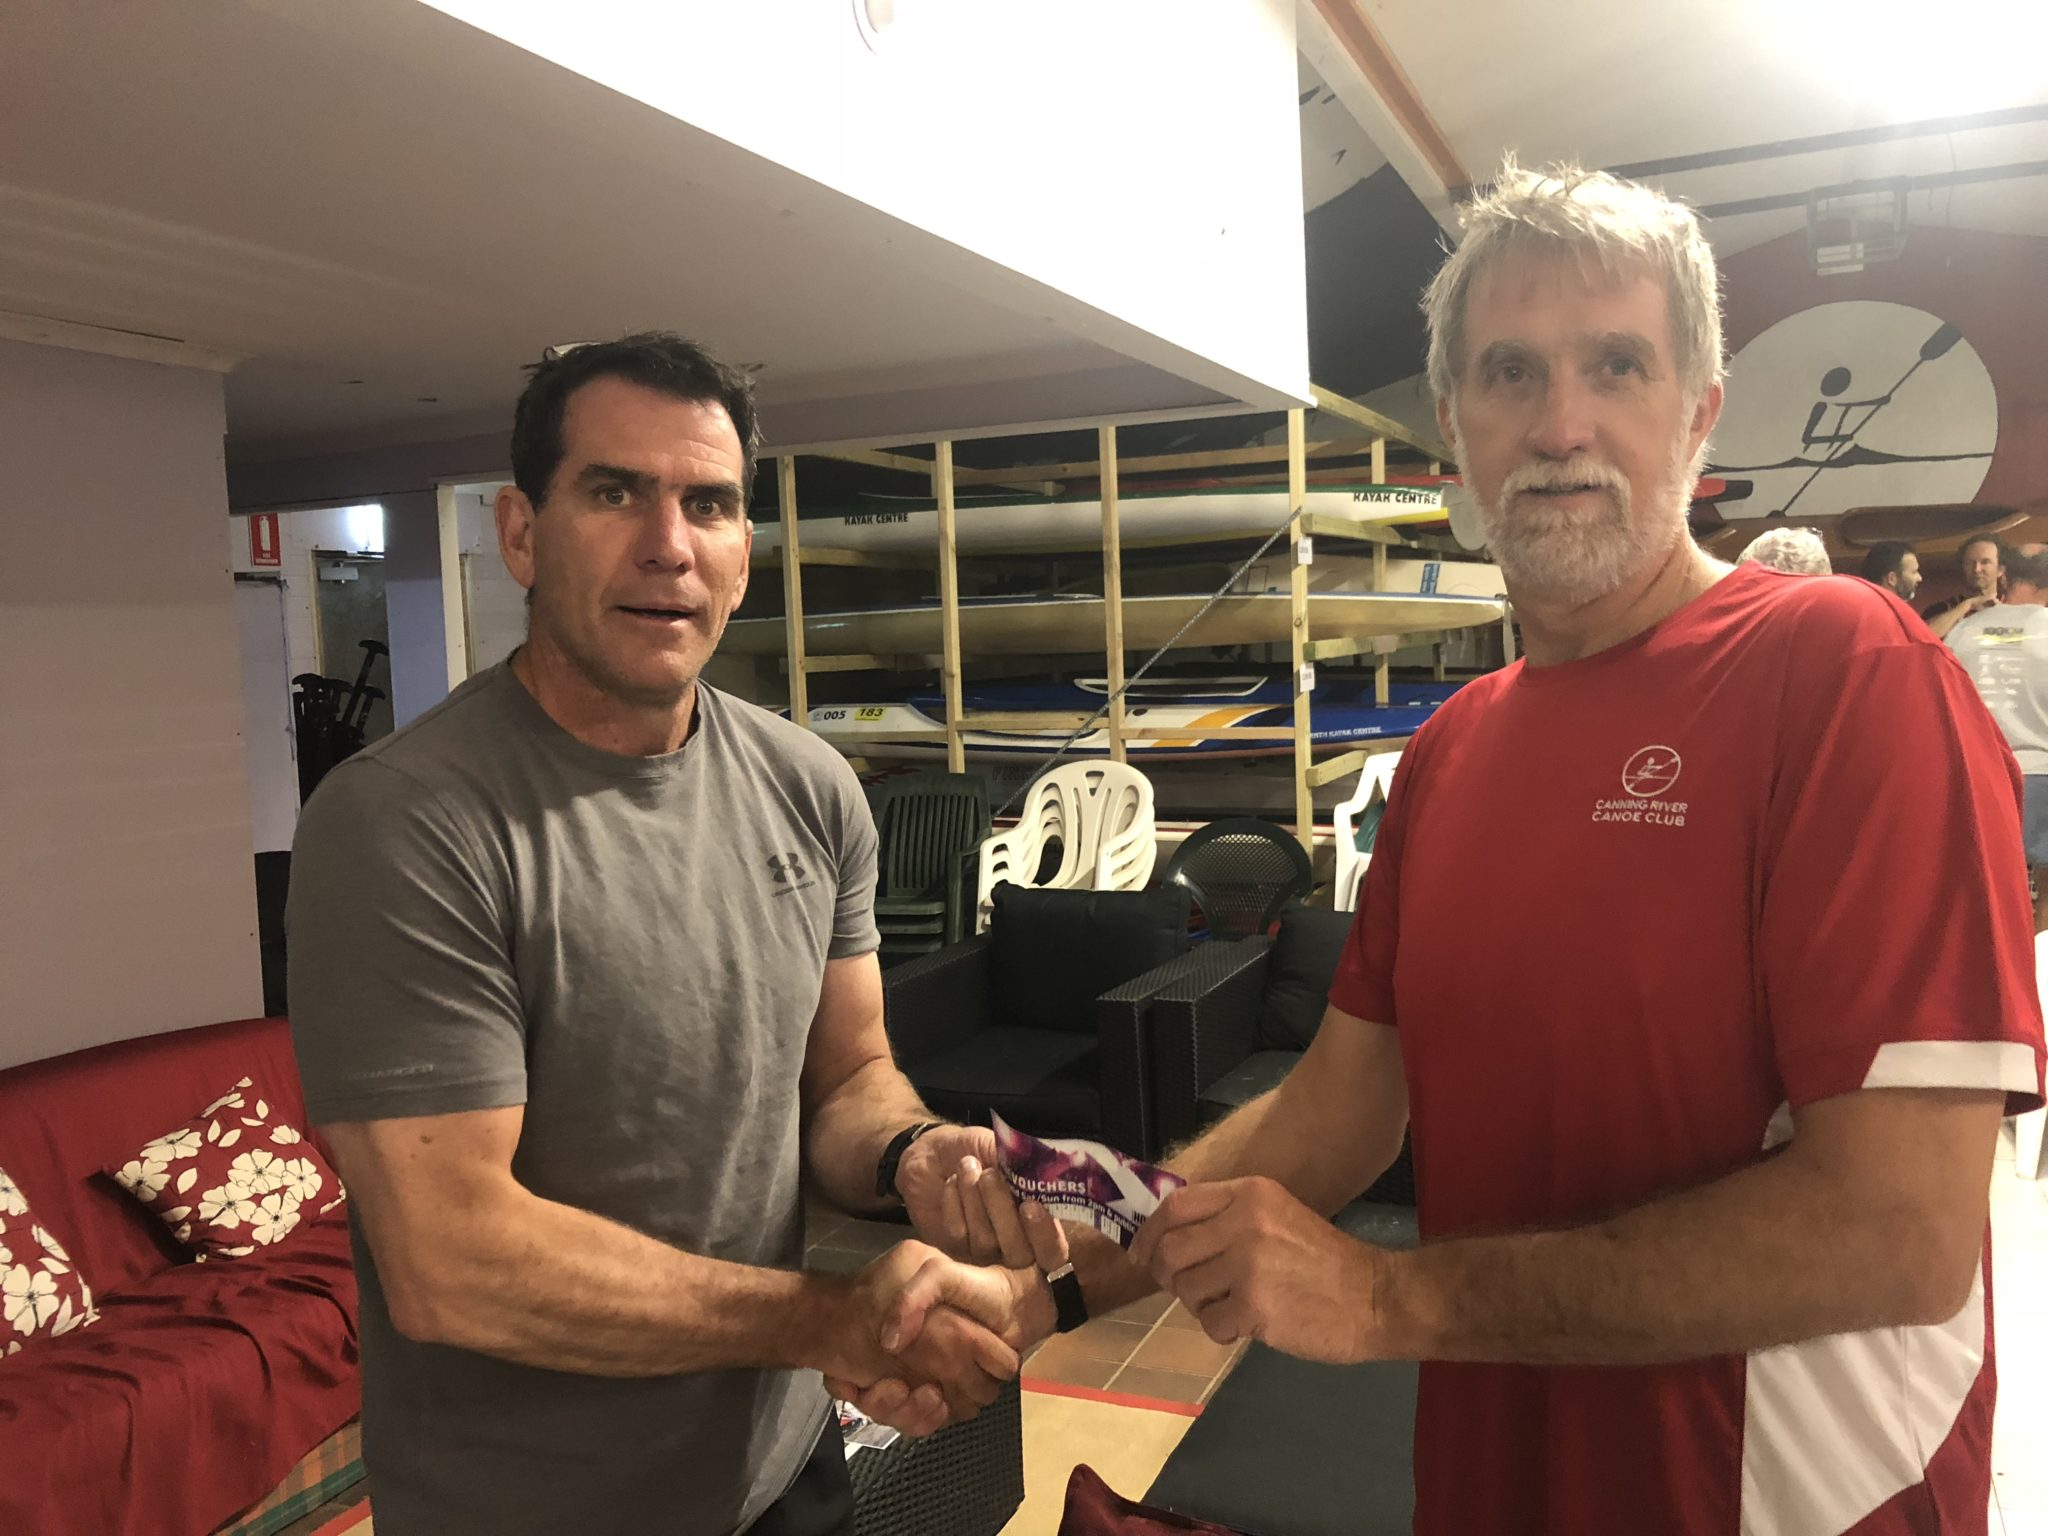 Tues 20th November 2018 : Tonight's photo shows club member Steve Coward presenting Stuart Hyde with a movie voucher.